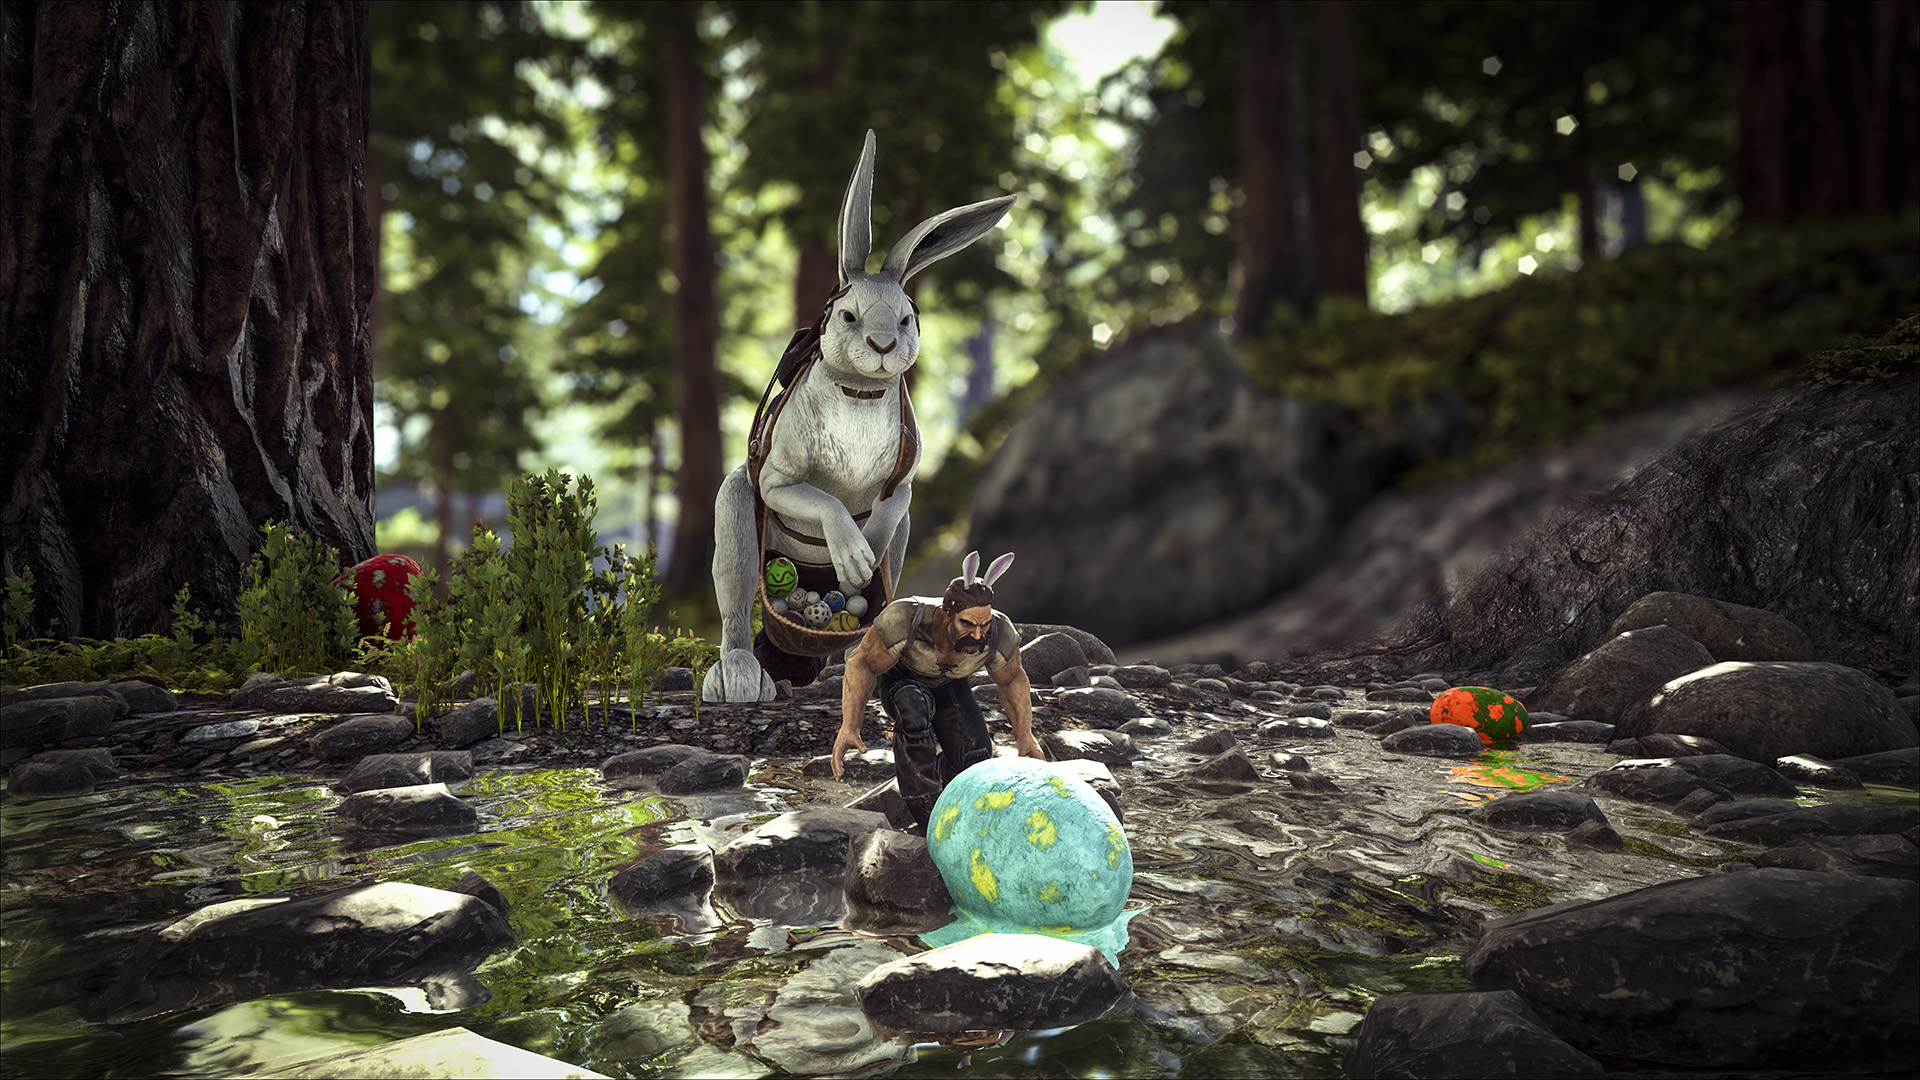 Ark survival evolved eggcellent adventure returns community cheat giveitem blueprintgameprimalearthcoreblueprintsitemsarmorleatherprimalitemskindinobunnyhatimalitemskindinobunnyhat 1 0 0 malvernweather Gallery